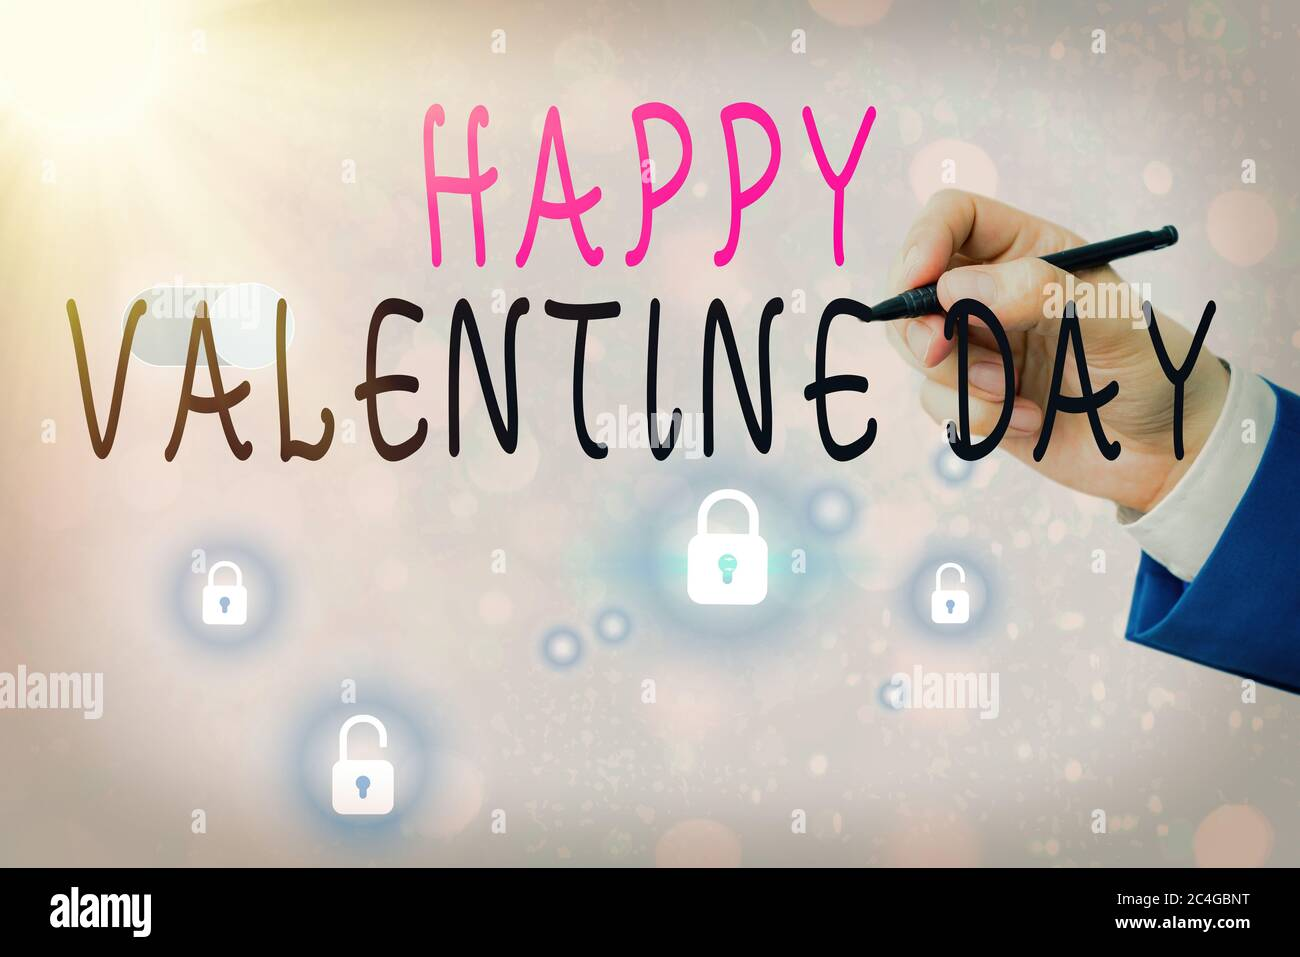 Text Sign Showing Happy Valentine Day Business Photo Text A Special Day For Lovers To Express Their Affection To Themselves Stock Photo Alamy